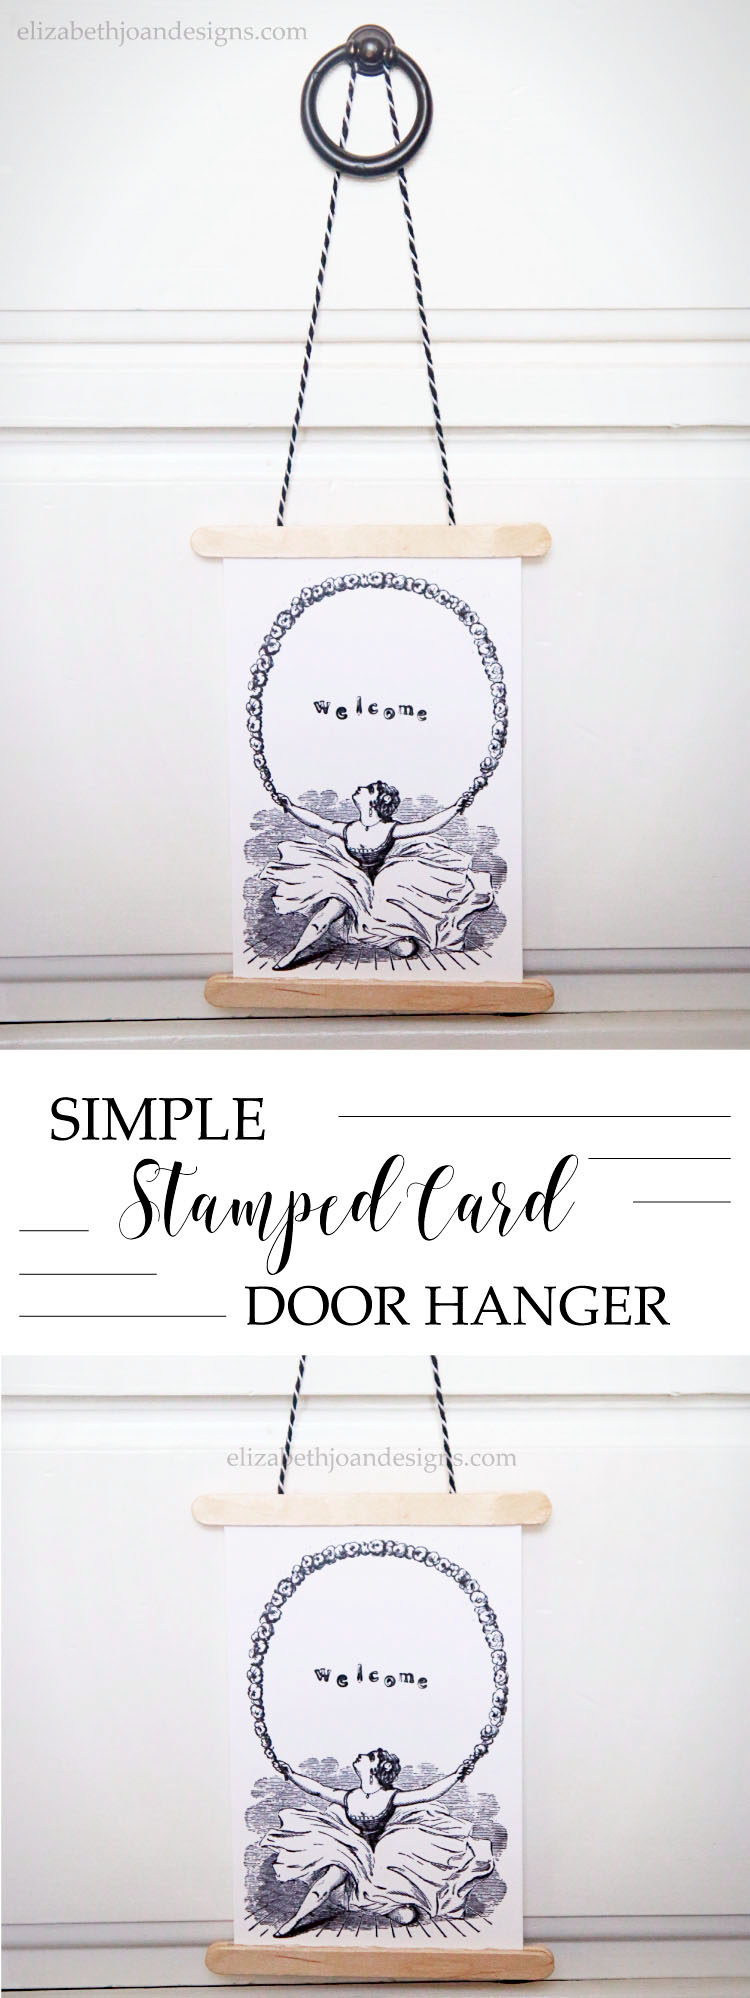 Simple Stamped Card Door Hanger - an easy 5 minute craft & it's great as a privacy door hanger